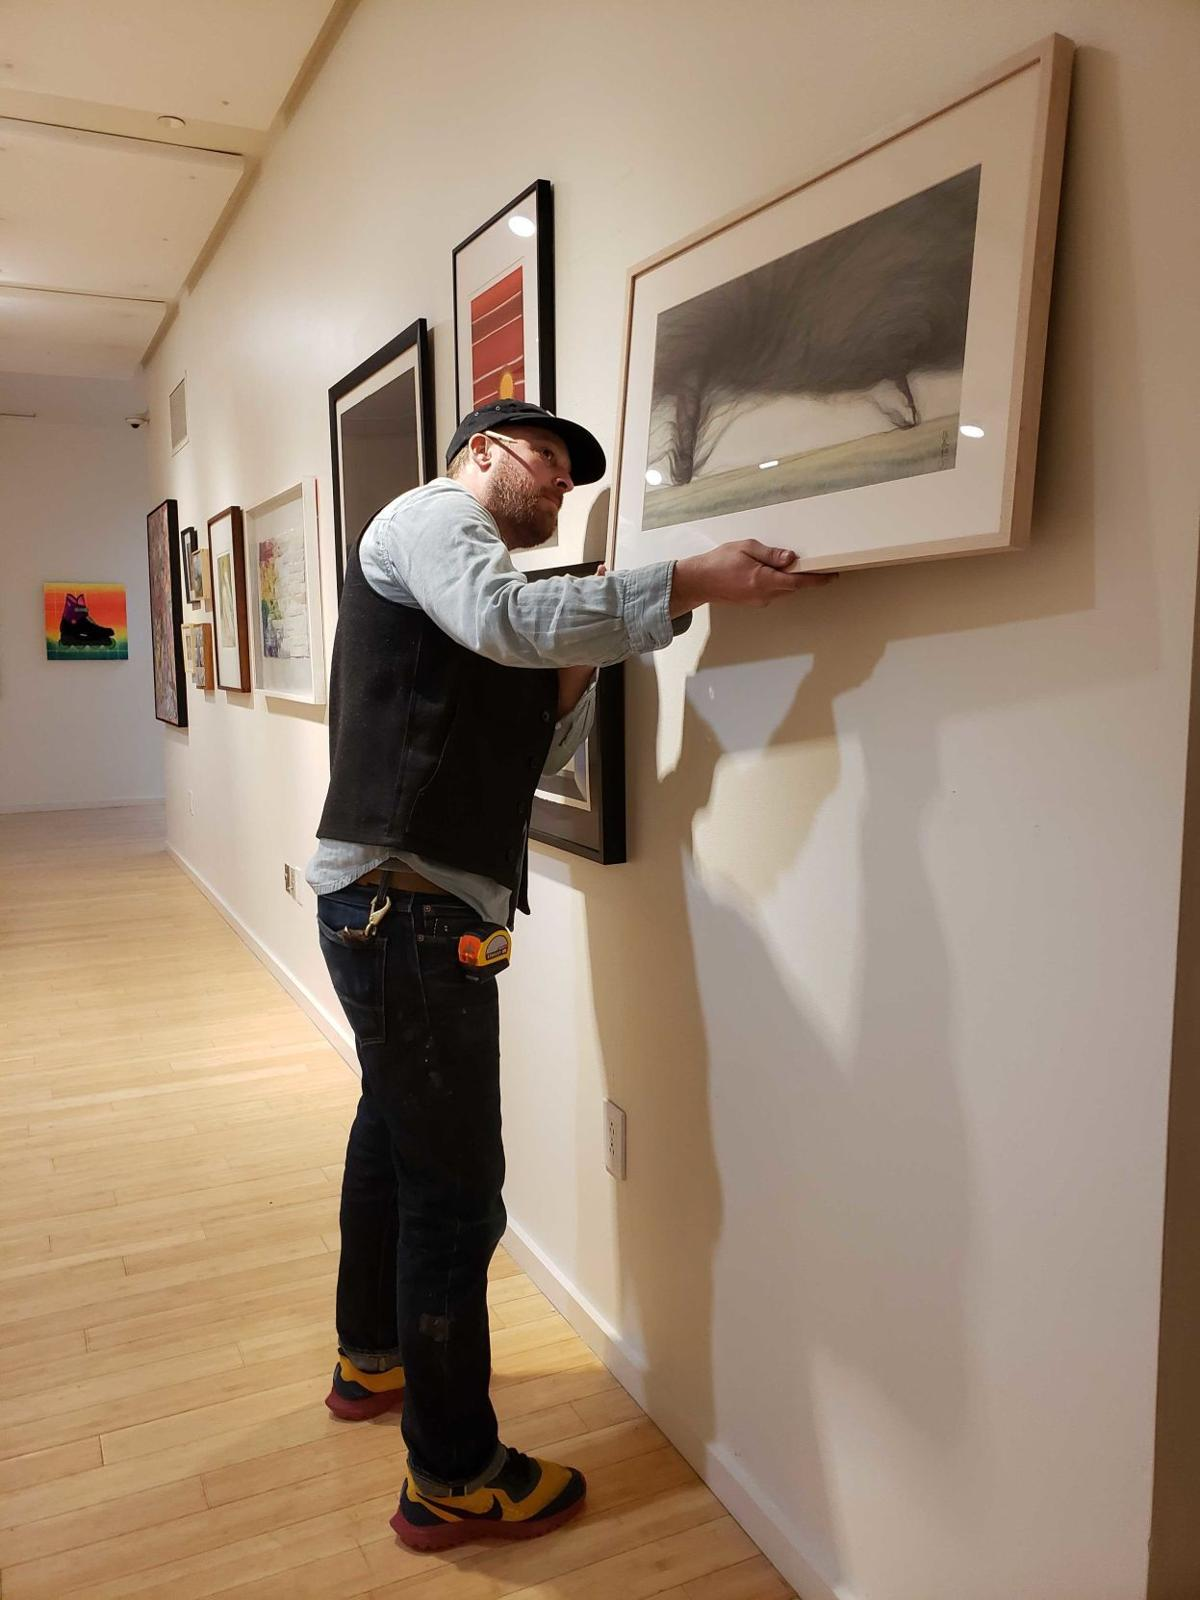 A man hangs a work of art on the wall of an exhibit